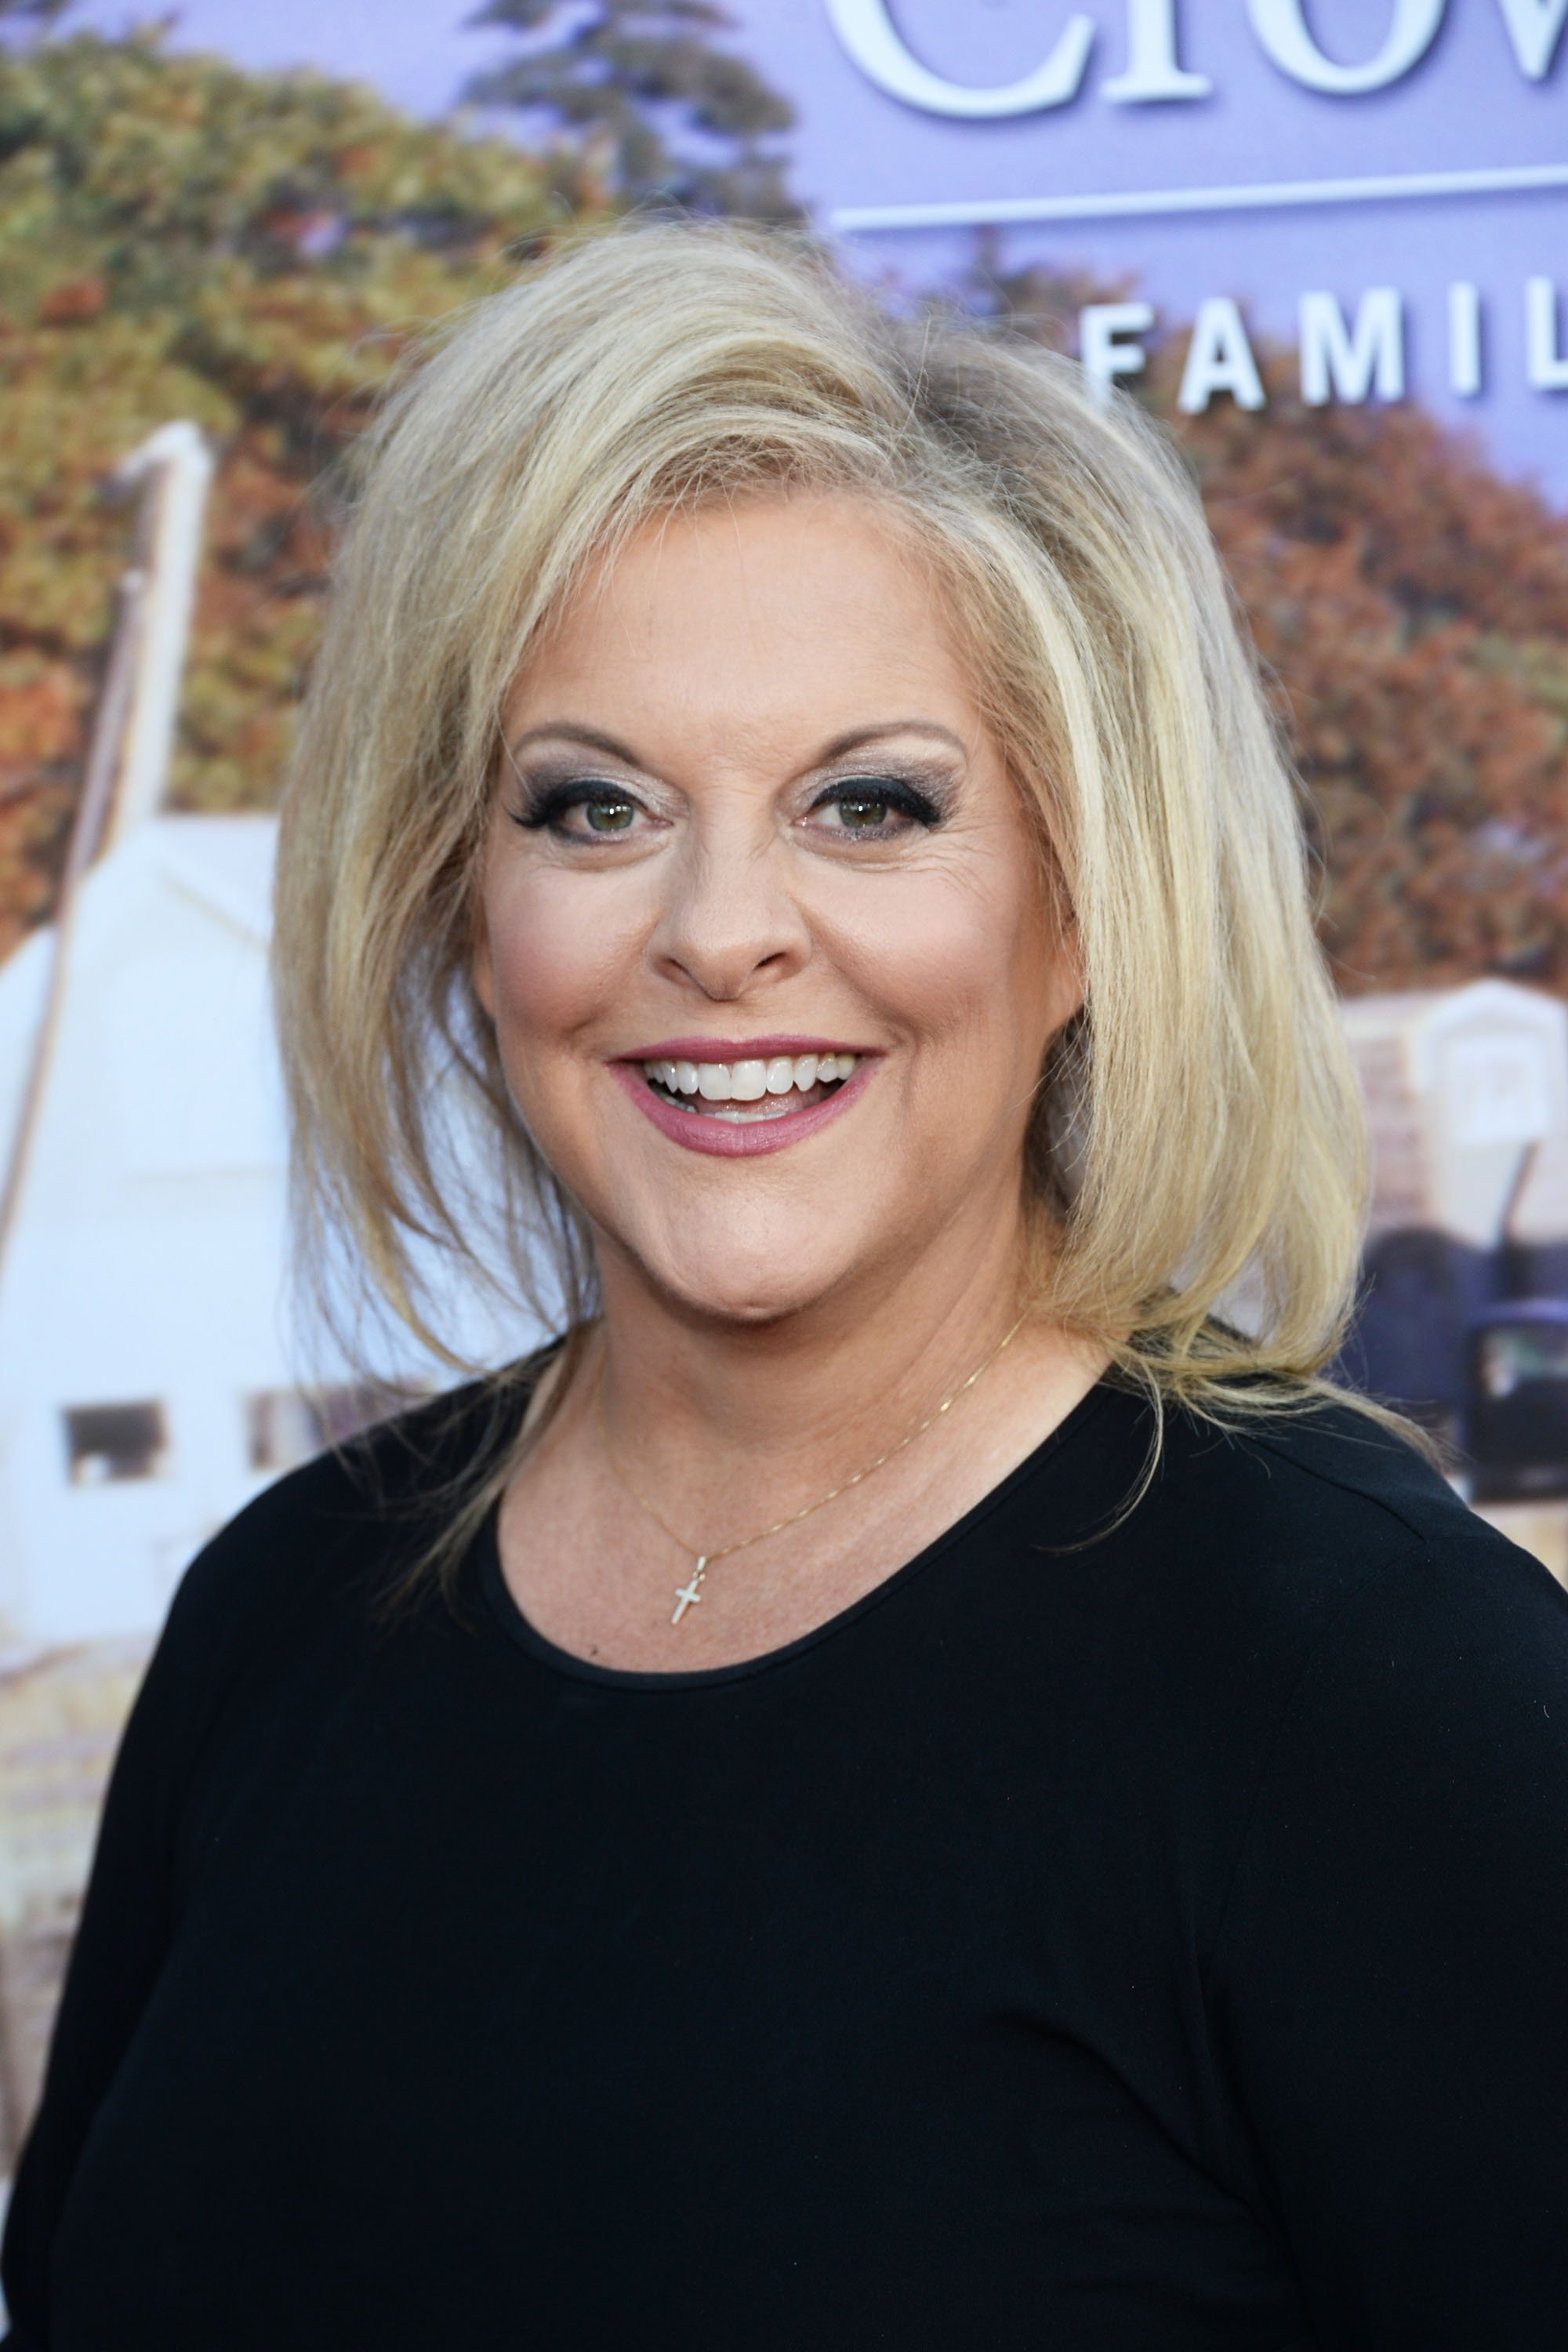 Nancy Grace attends the Hallmark Channel and Hallmark Movies and Mysteries Summer 2016 TCA press tour event on July 27, 2016 in Beverly Hills,